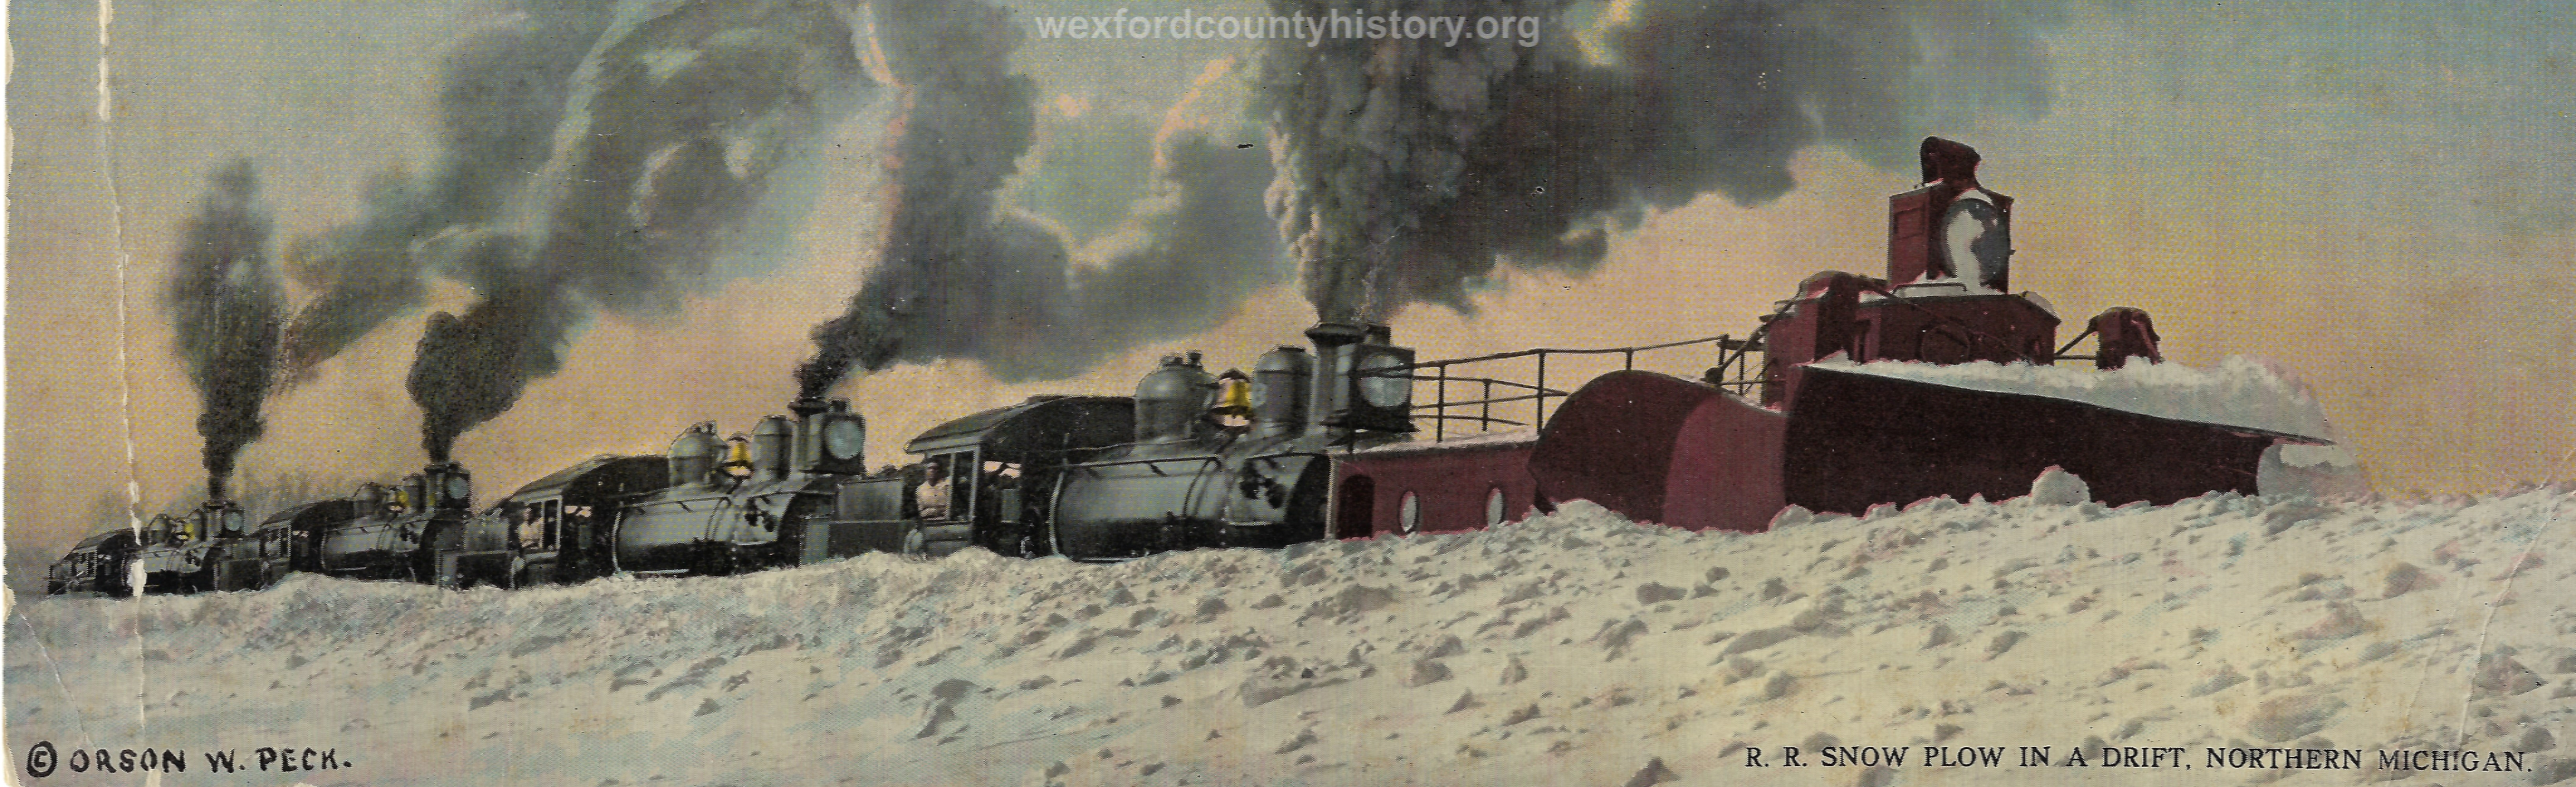 Cadillac-Railroad-Clearing-Tracks-During-The-Winter